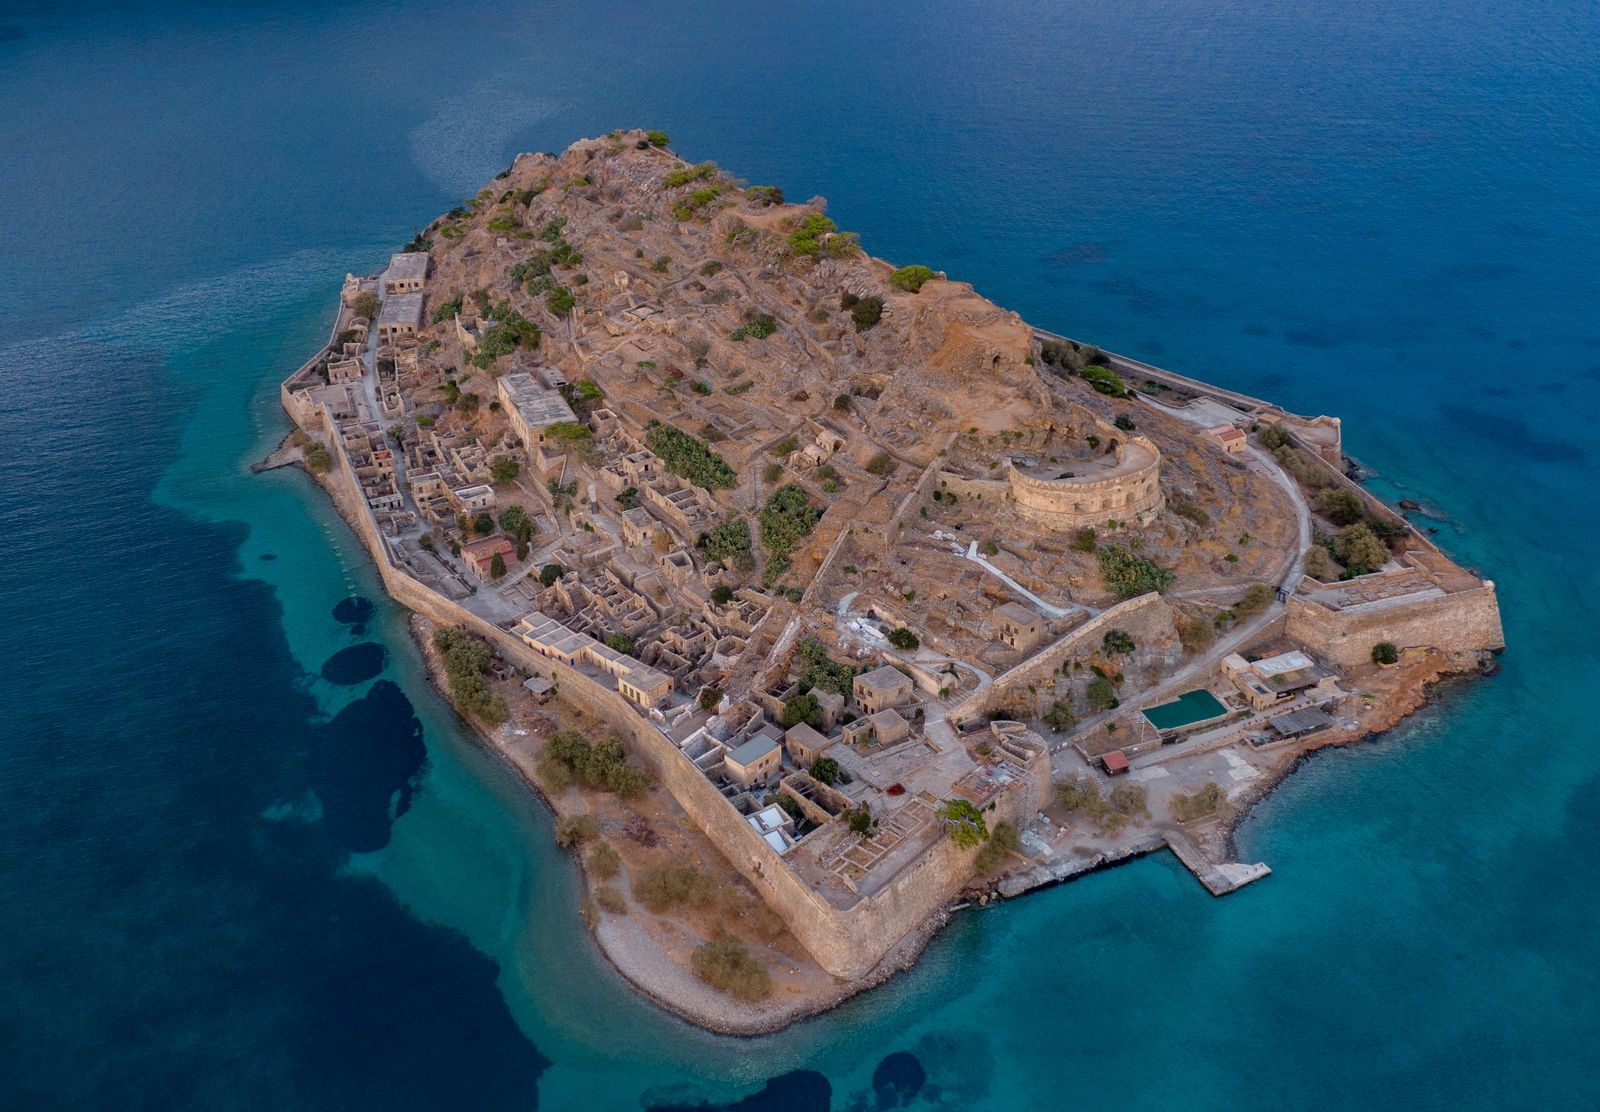 Aerial view of the island of Spinalonga in the blue sea waters off the coast of Crete in Greece, the island is a stone fortress. Aerial photography